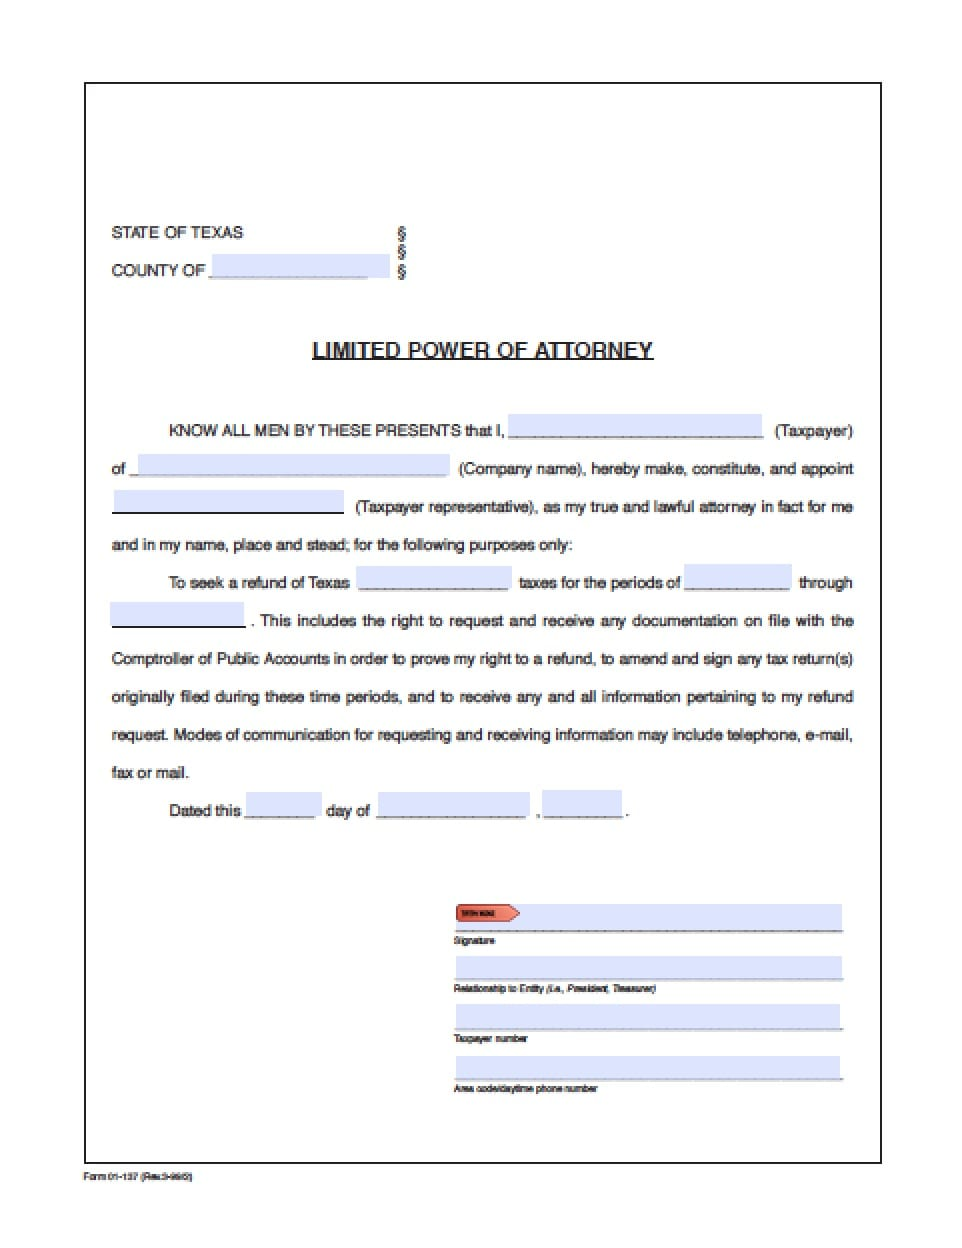 Texas Revocation Power of Attorney Form - Power of Attorney ...